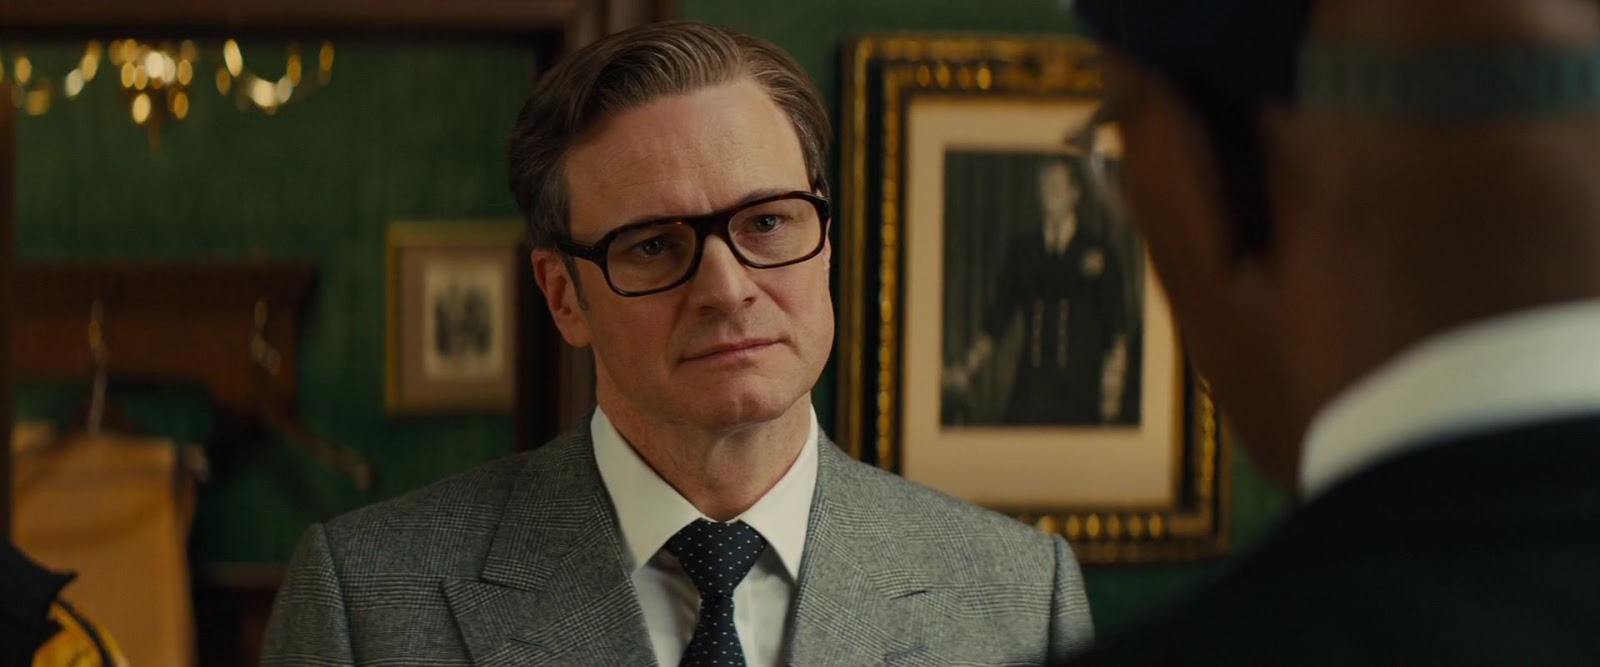 kingsman tie photo - 1